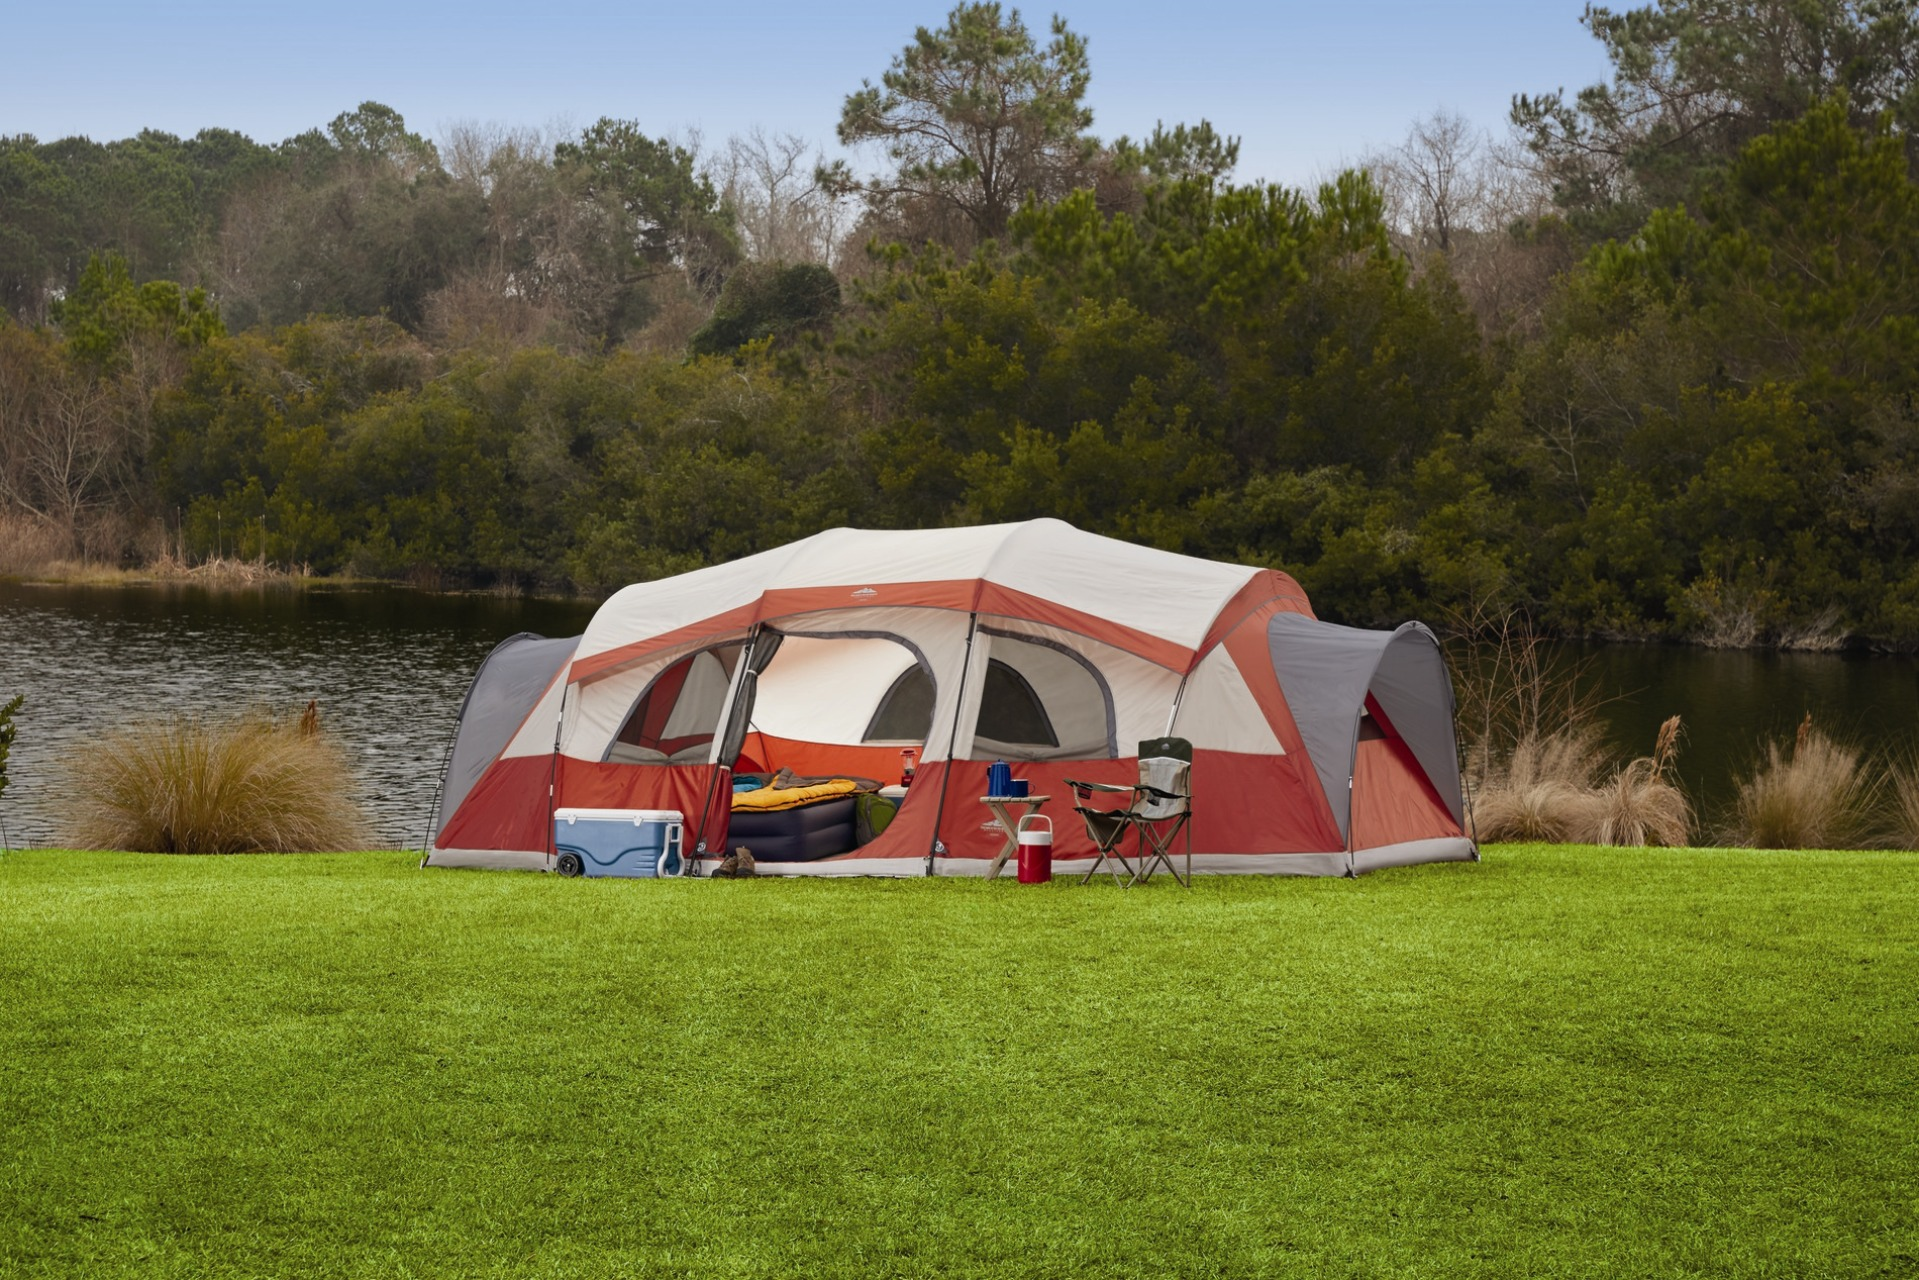 Northwest Territory Homestead 21 ft. x 14 ft. Tent Is the Perfect Way to & Northwest Territory Homestead 21 ft. x 14 ft. Tent Is the Perfect ...